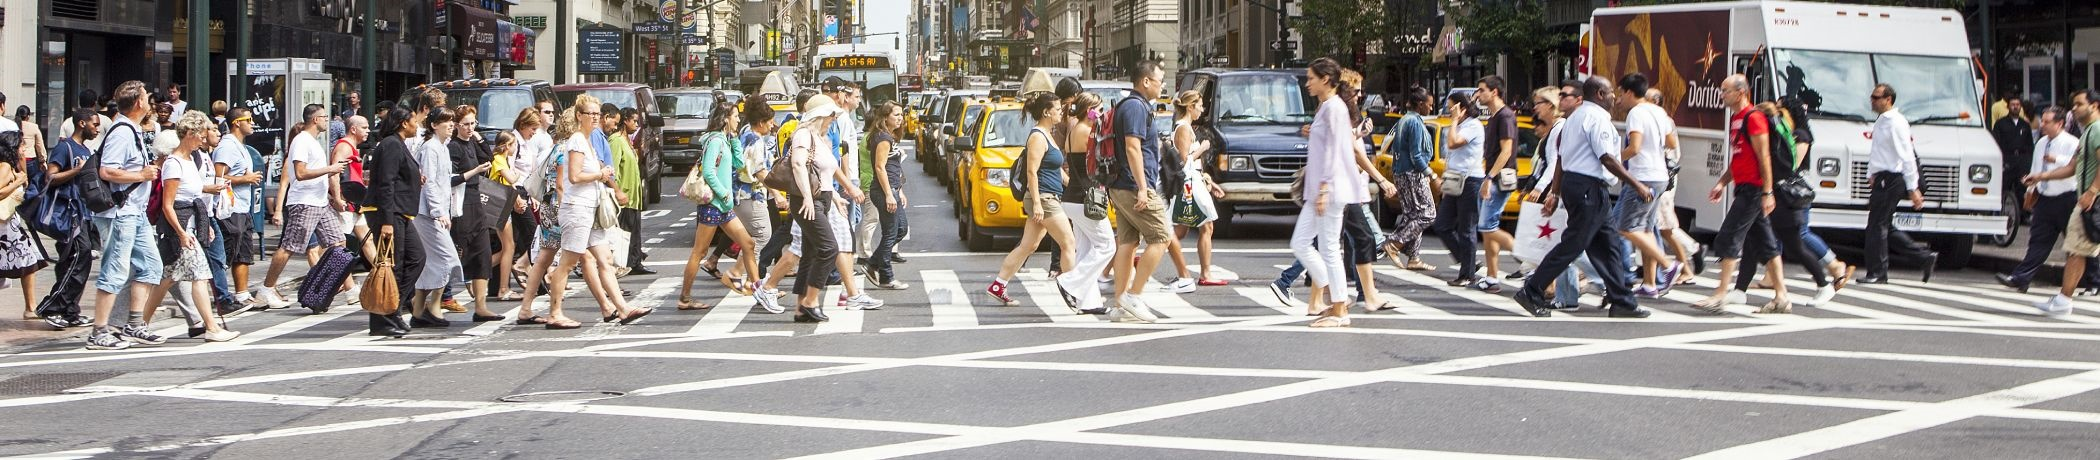 Pedestrian Car Accident Lawyer NYC